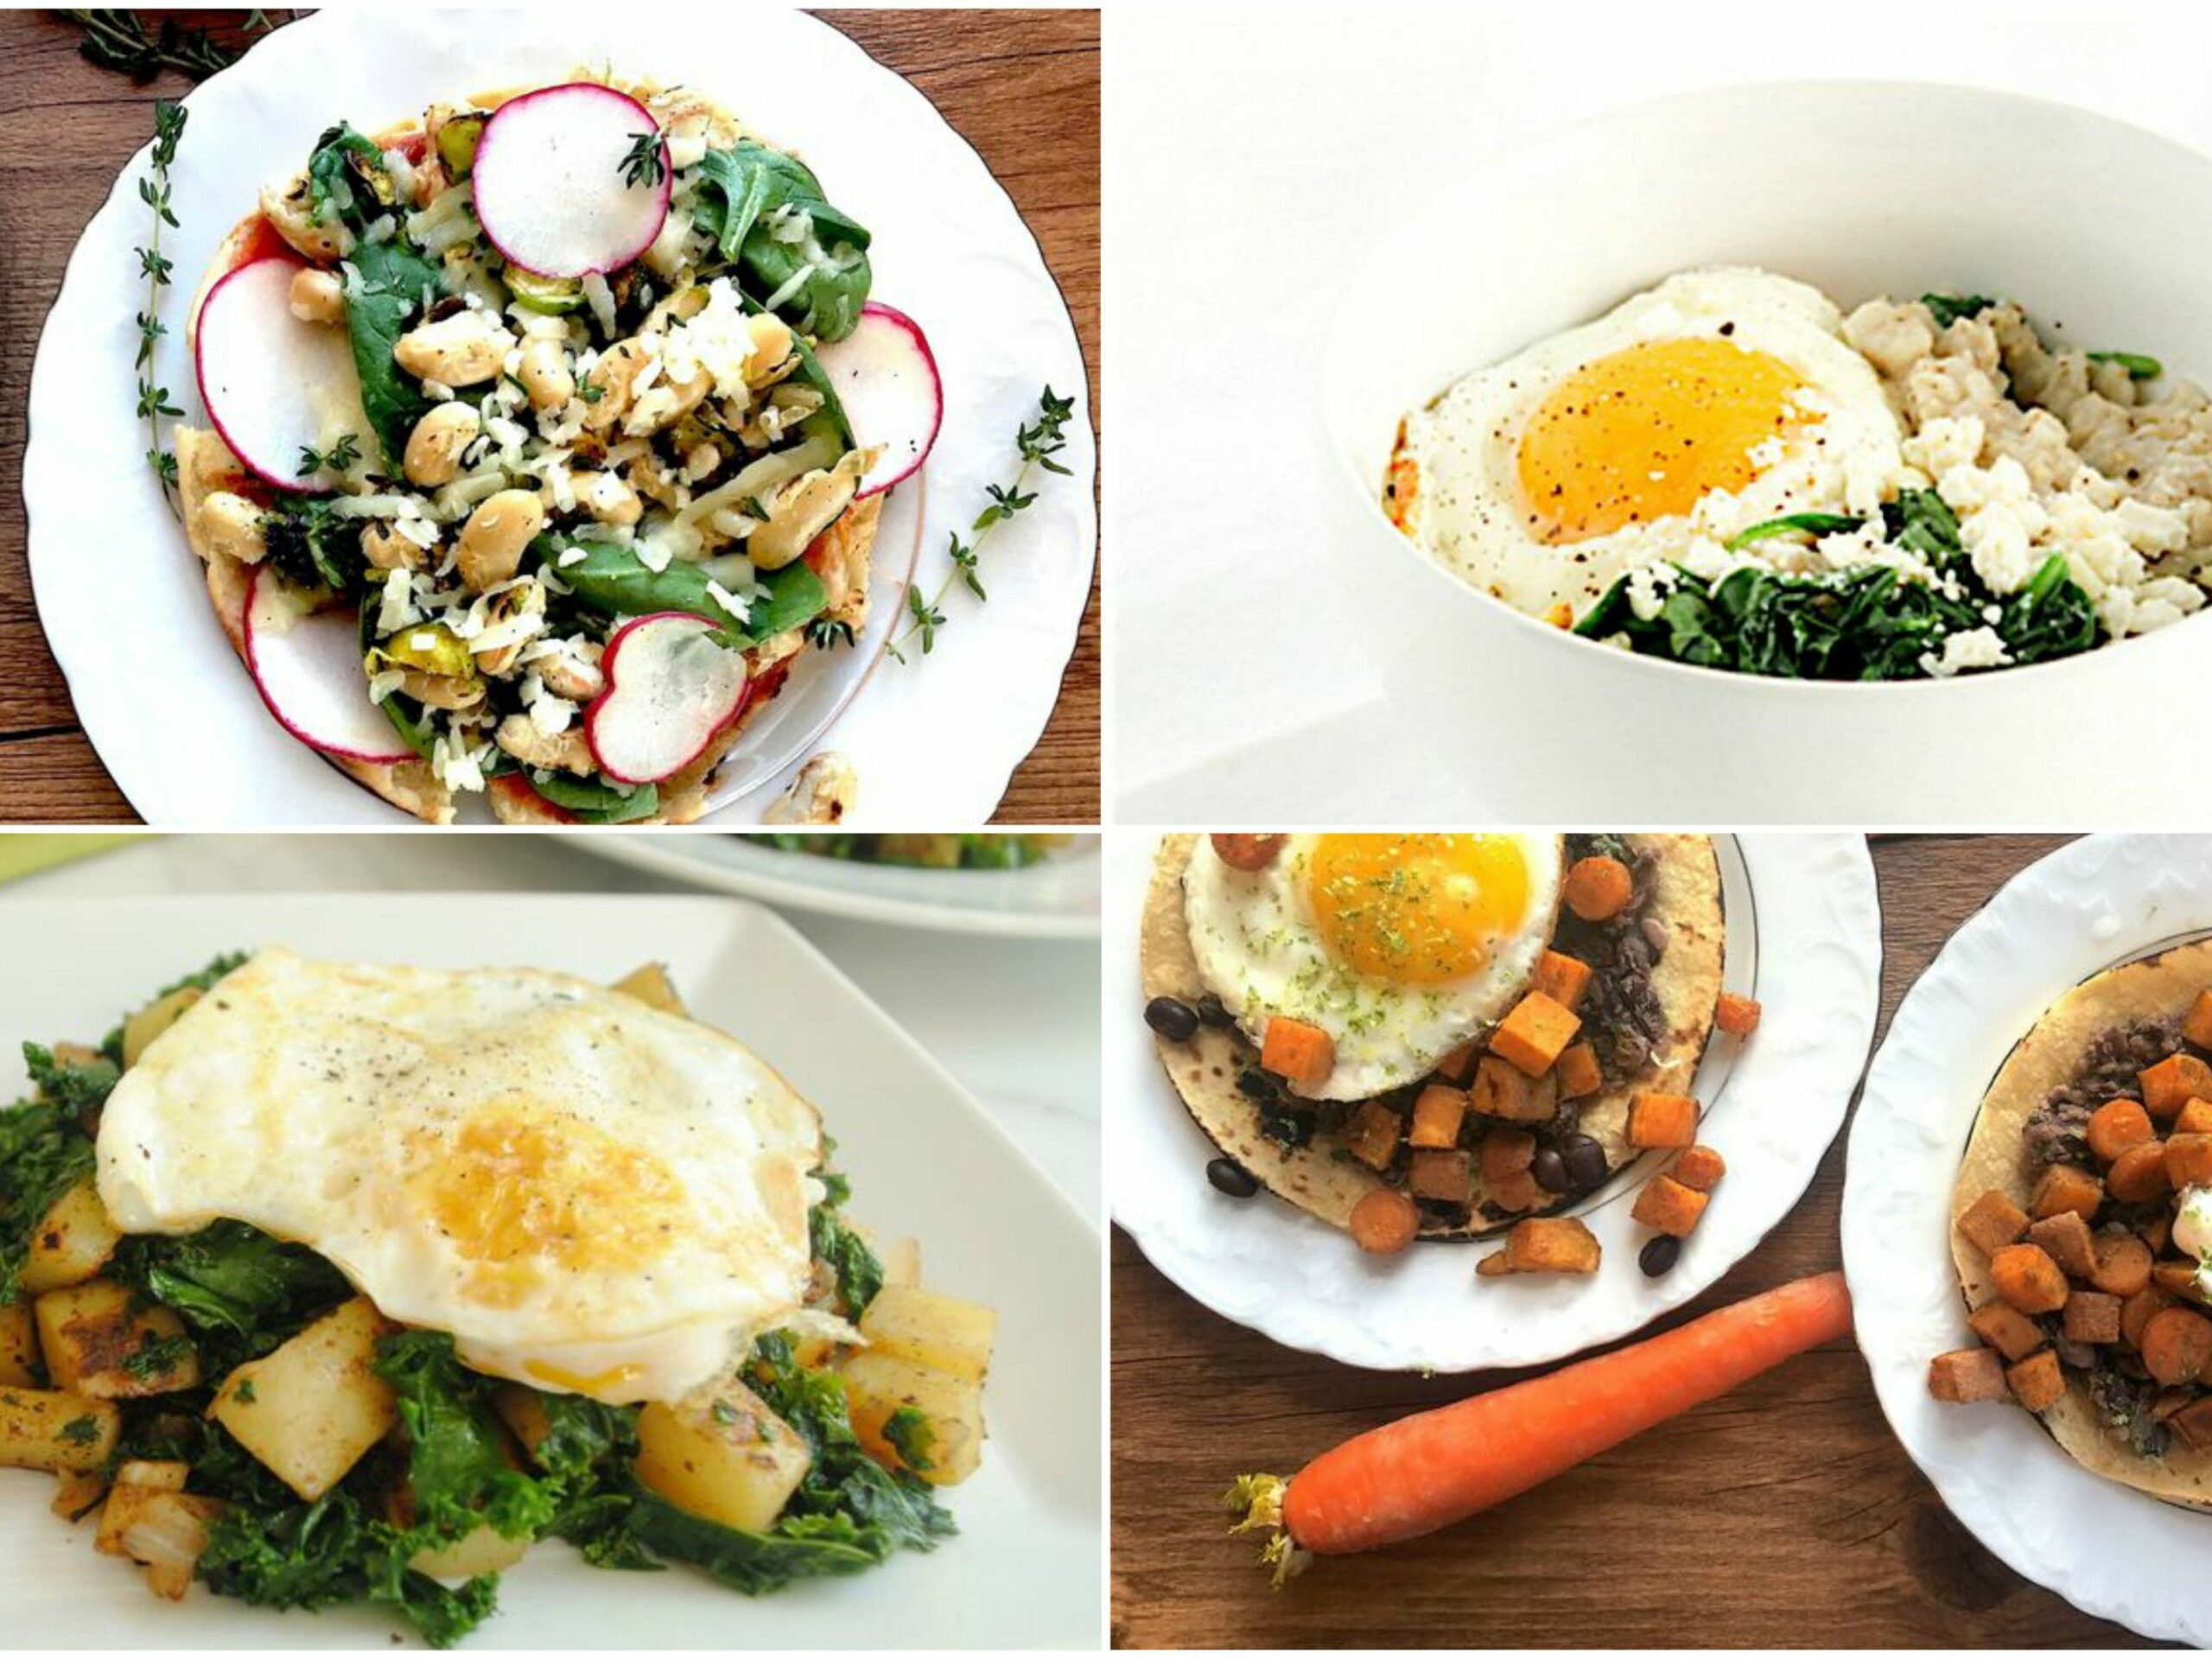 12 Iron-Rich Vegetarian Meals - Easy Recipes High In Iron